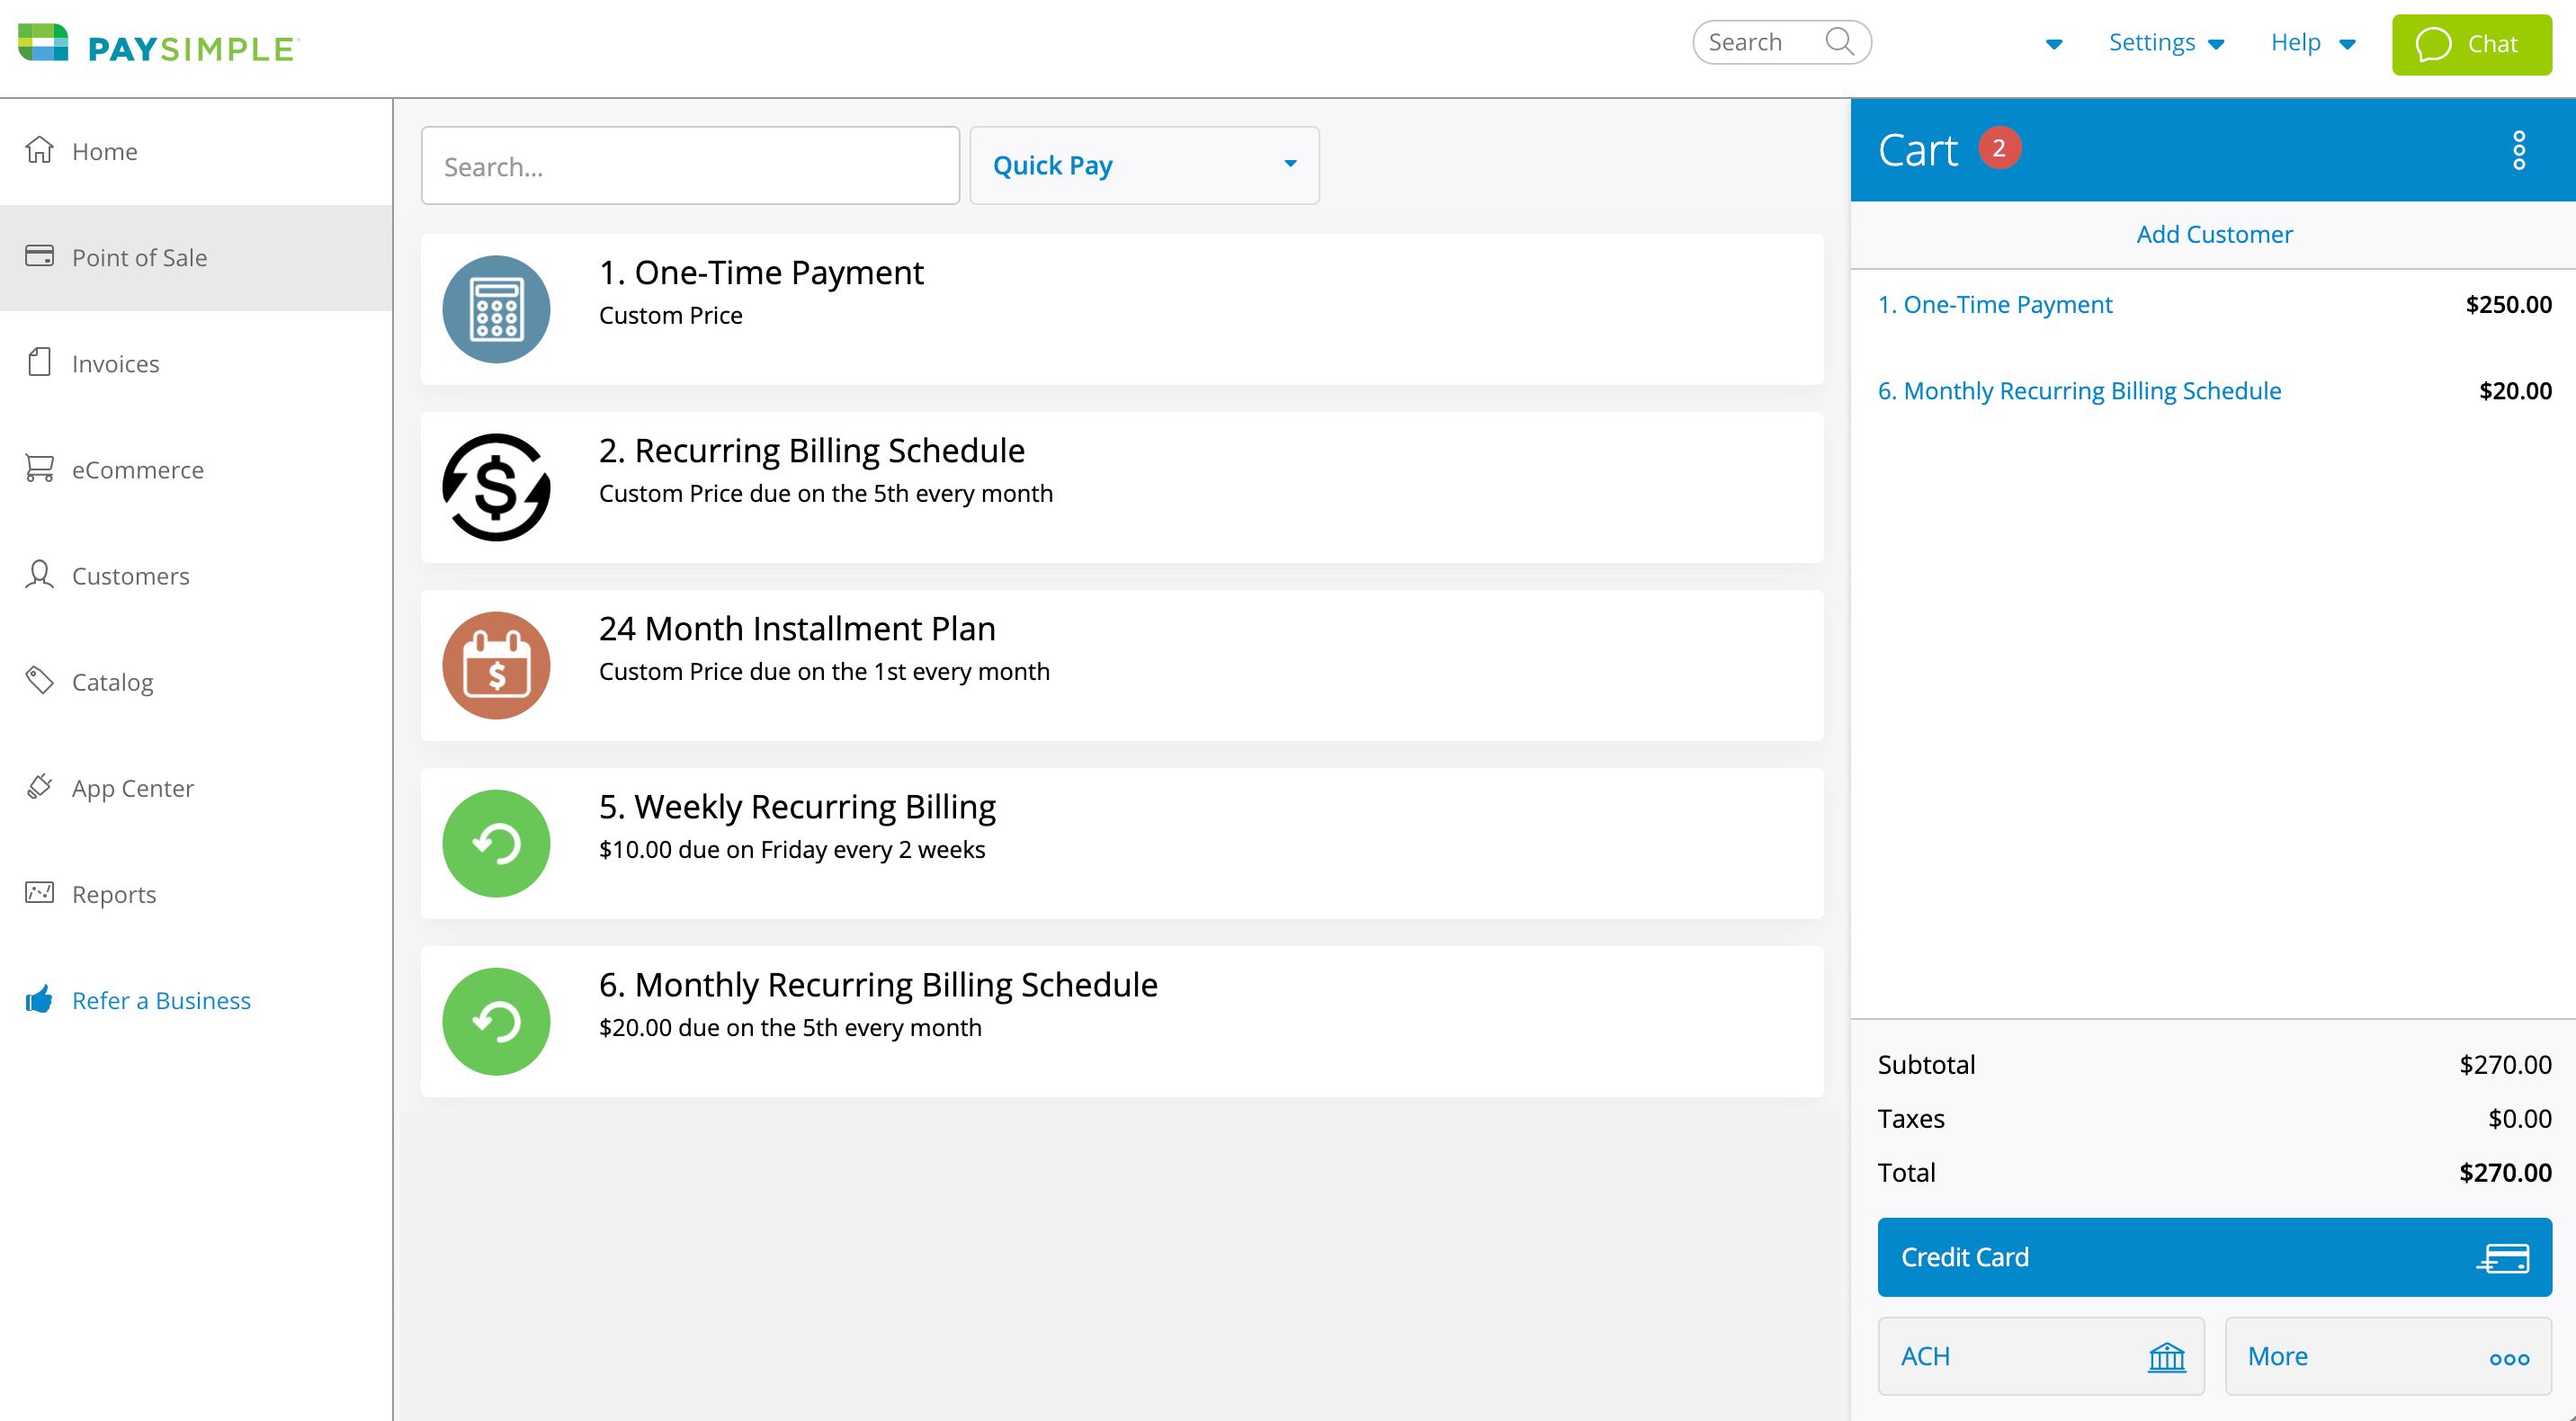 PaySimple Software - Process payments over the phone or in person with Point of Sale